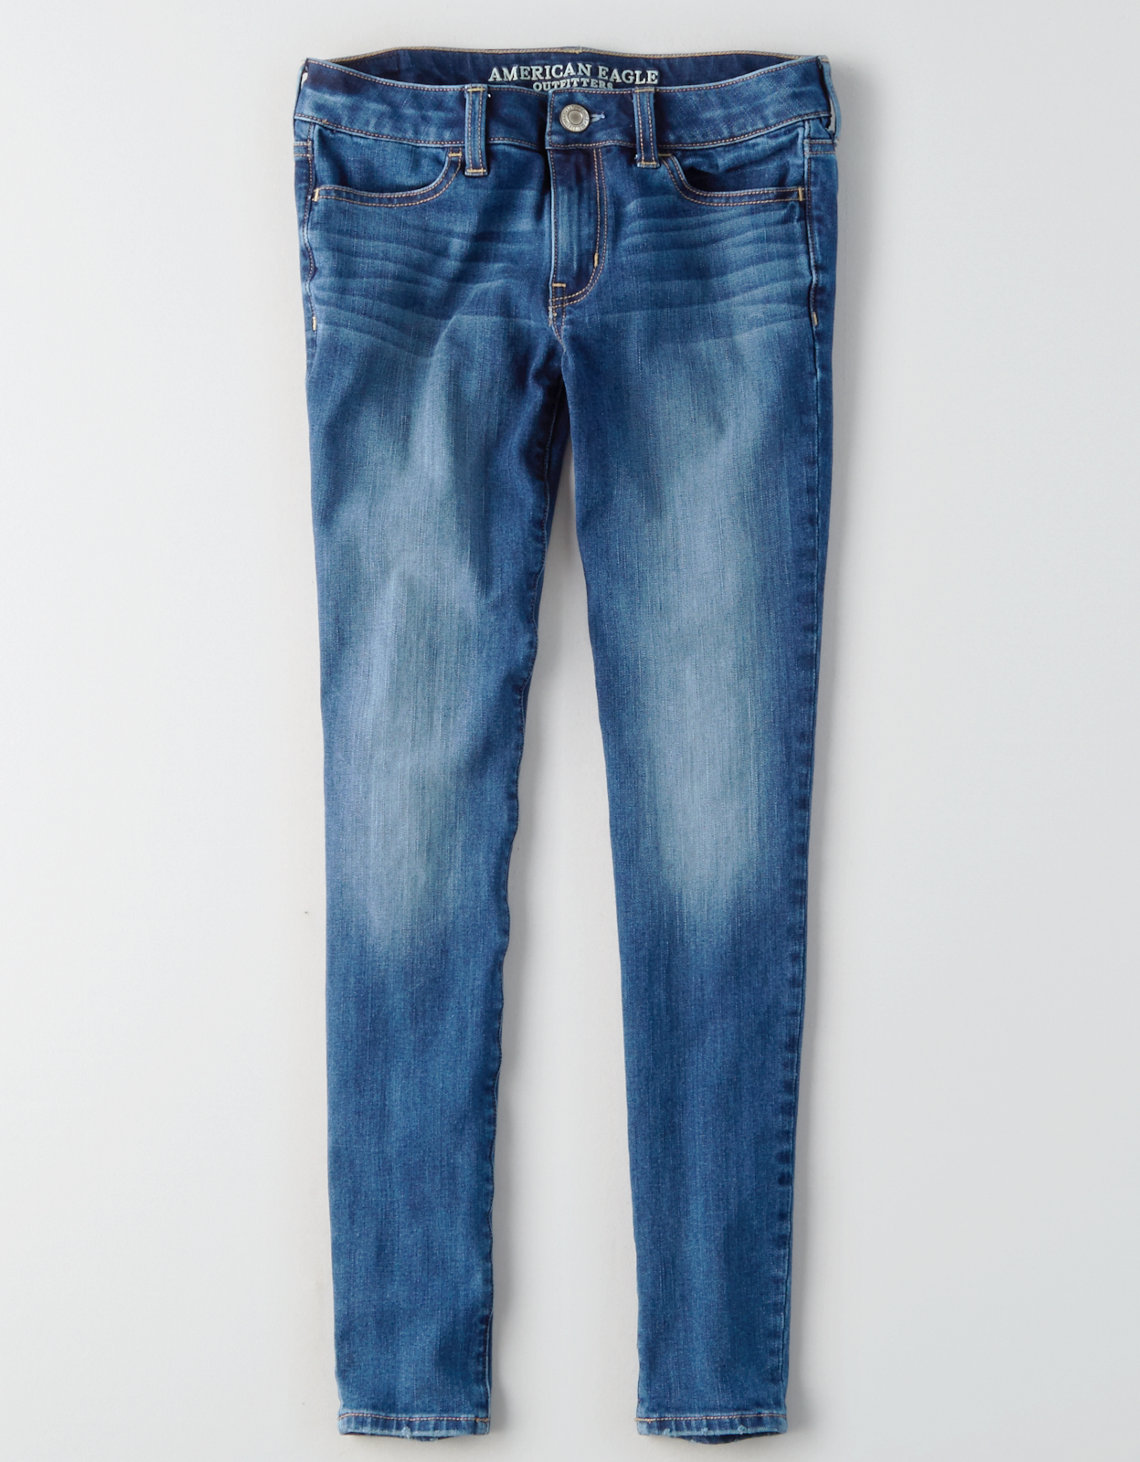 AE Denim X4 Jegging